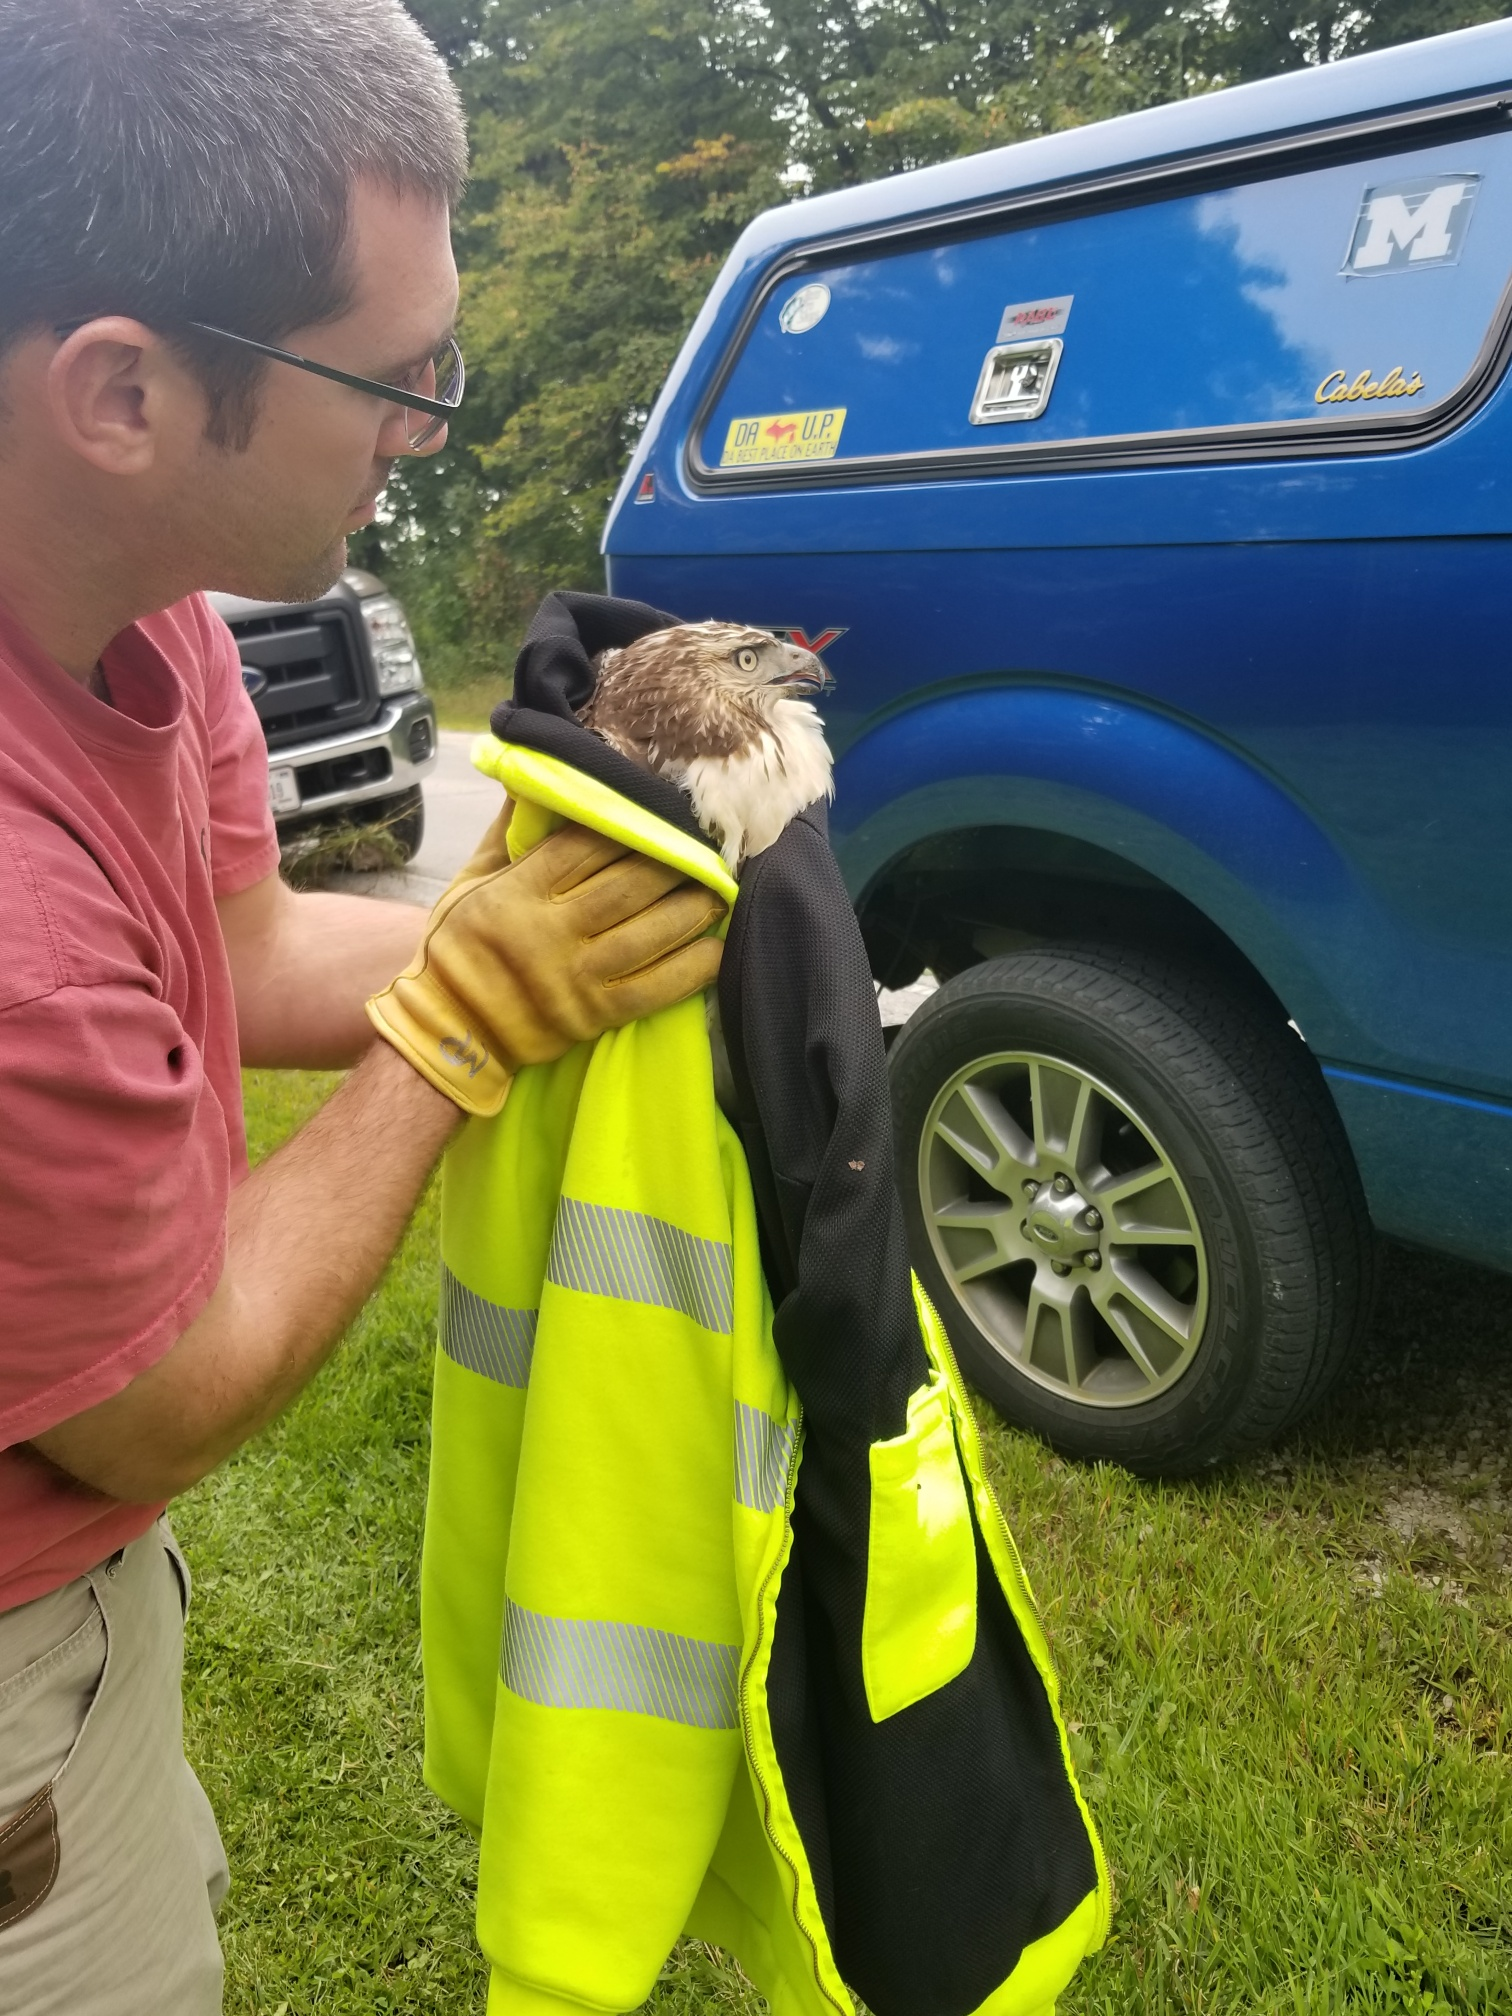 (3/3) The Roads and Grounds crew then took the hawk to Willowbrook Wildlife Center. nature, animal, bird, hawk, red-tailed hawk, people, wildlife Photo: Jon Ylinen